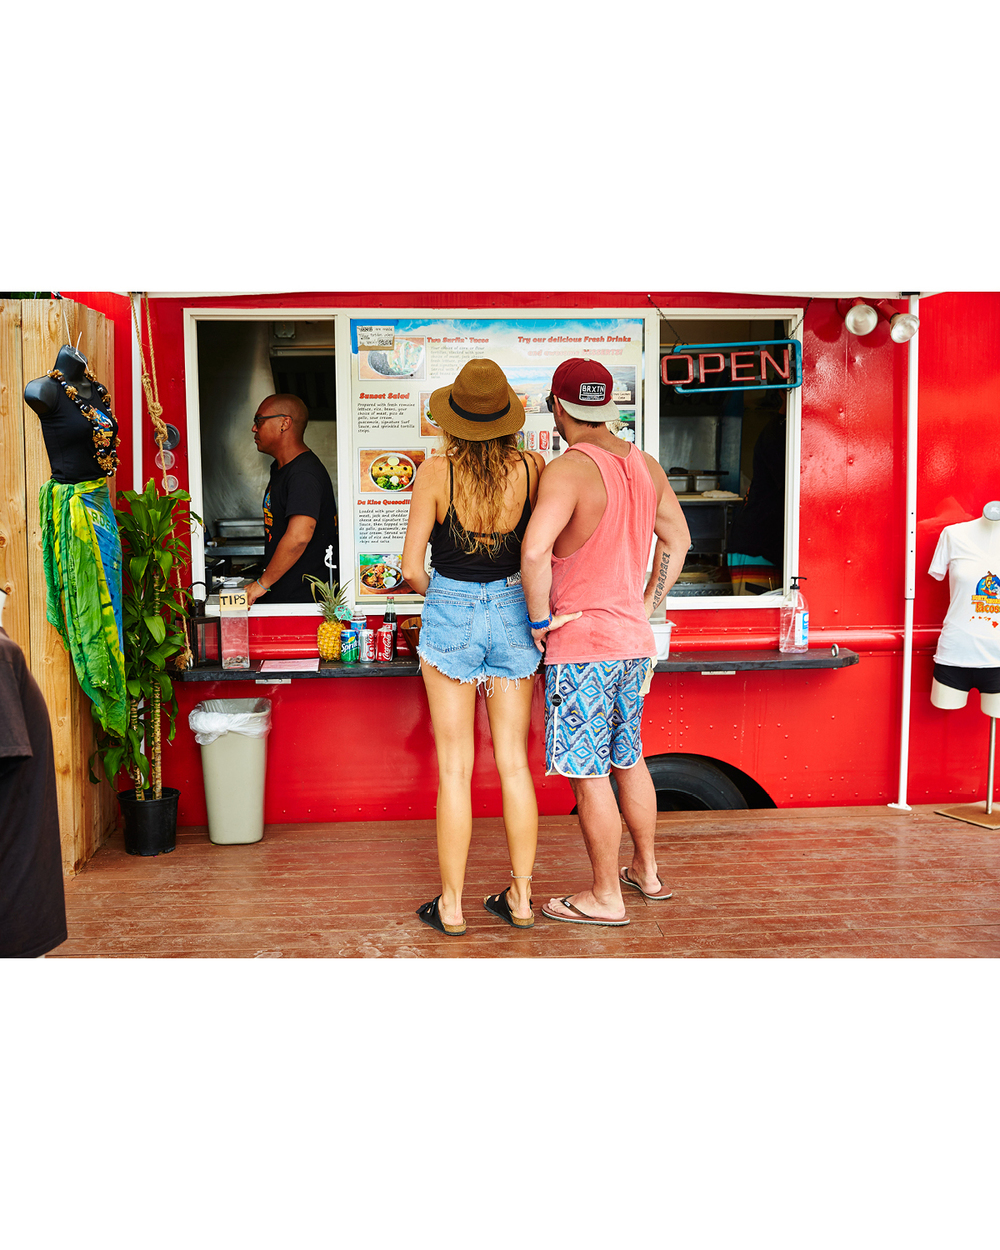 ORDERING SOME TACOS AND BEER